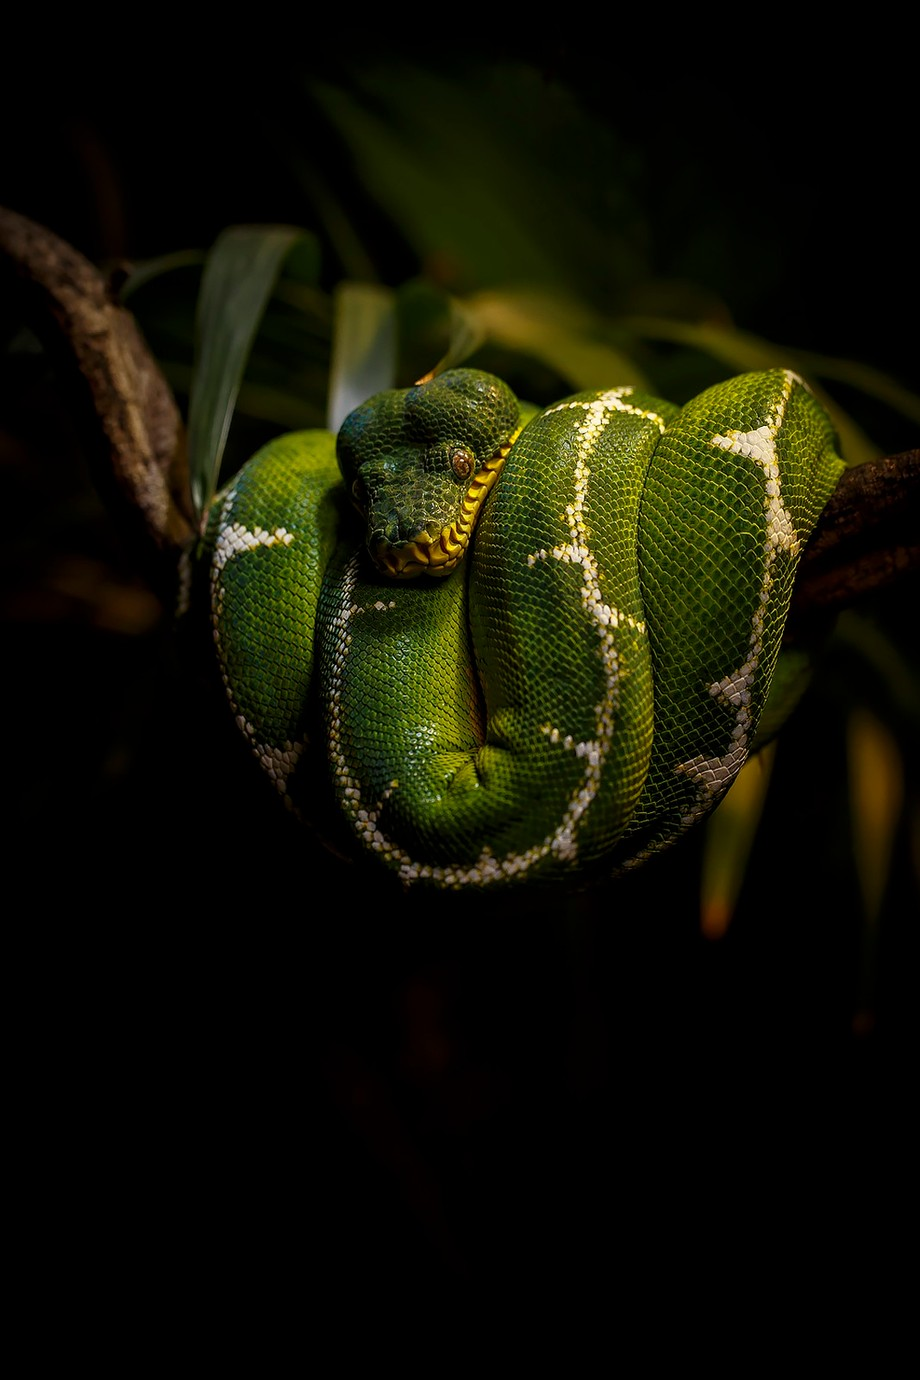 Emerald Boa by panilsson - Snakes Photo Contest